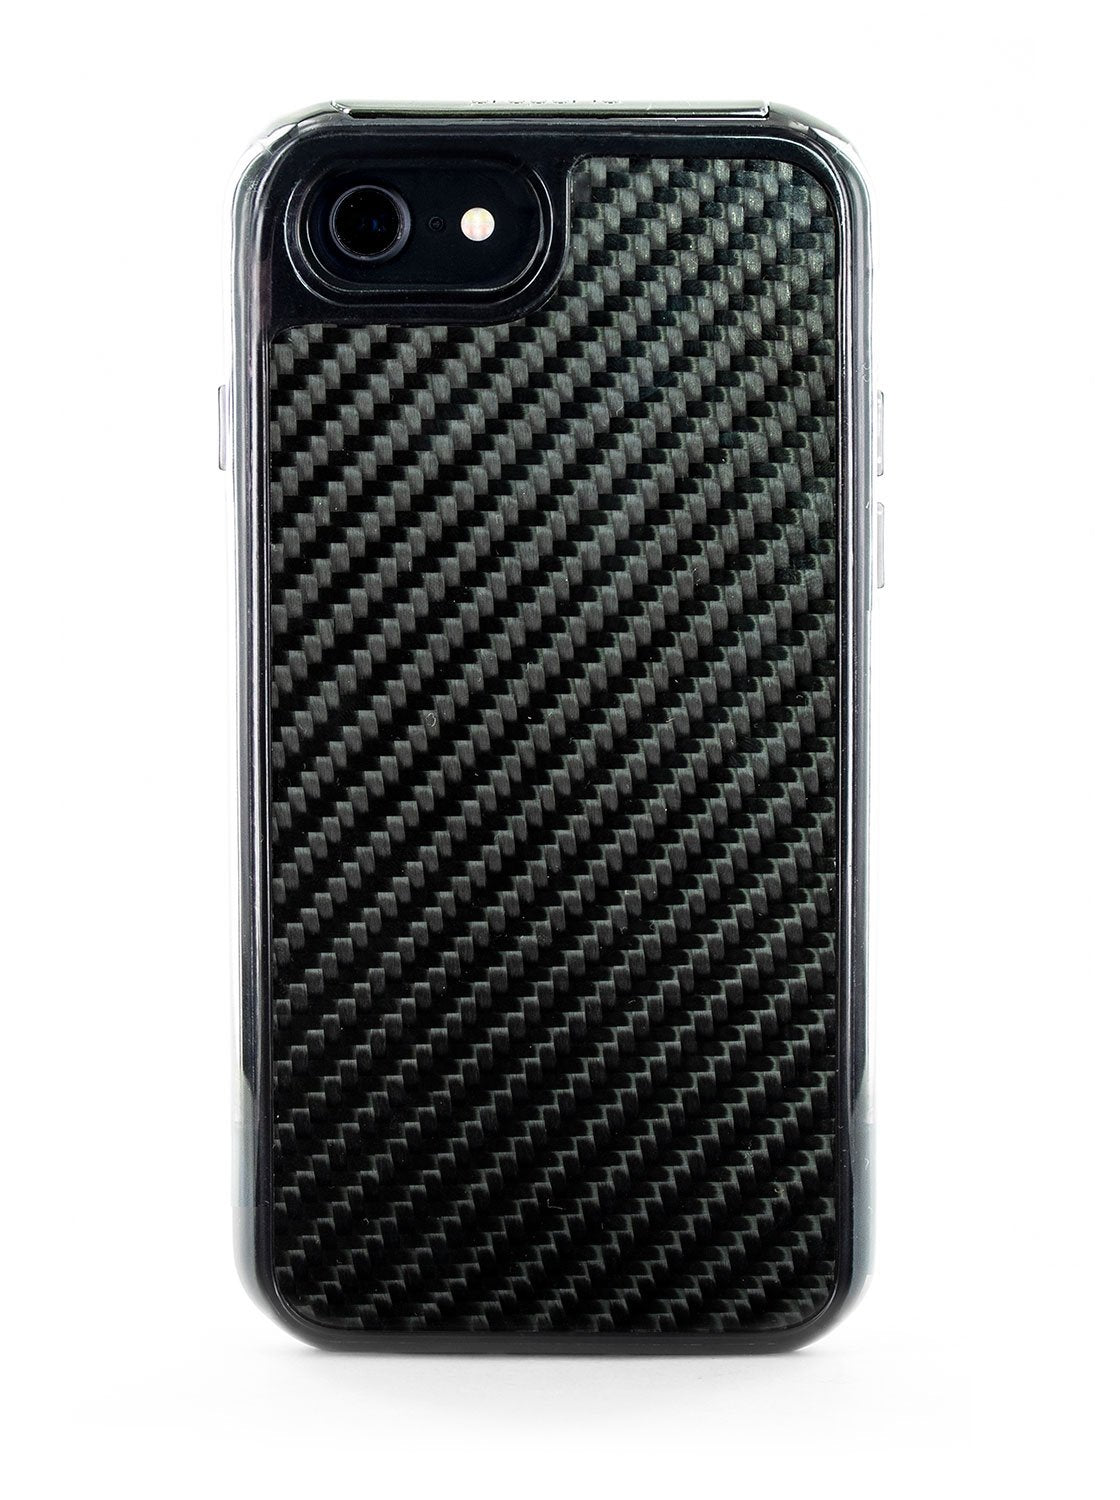 FLEX Anti Shock Kickstand Case for iPhone SE (2020) / 8 / 7 - Carbon Fibre